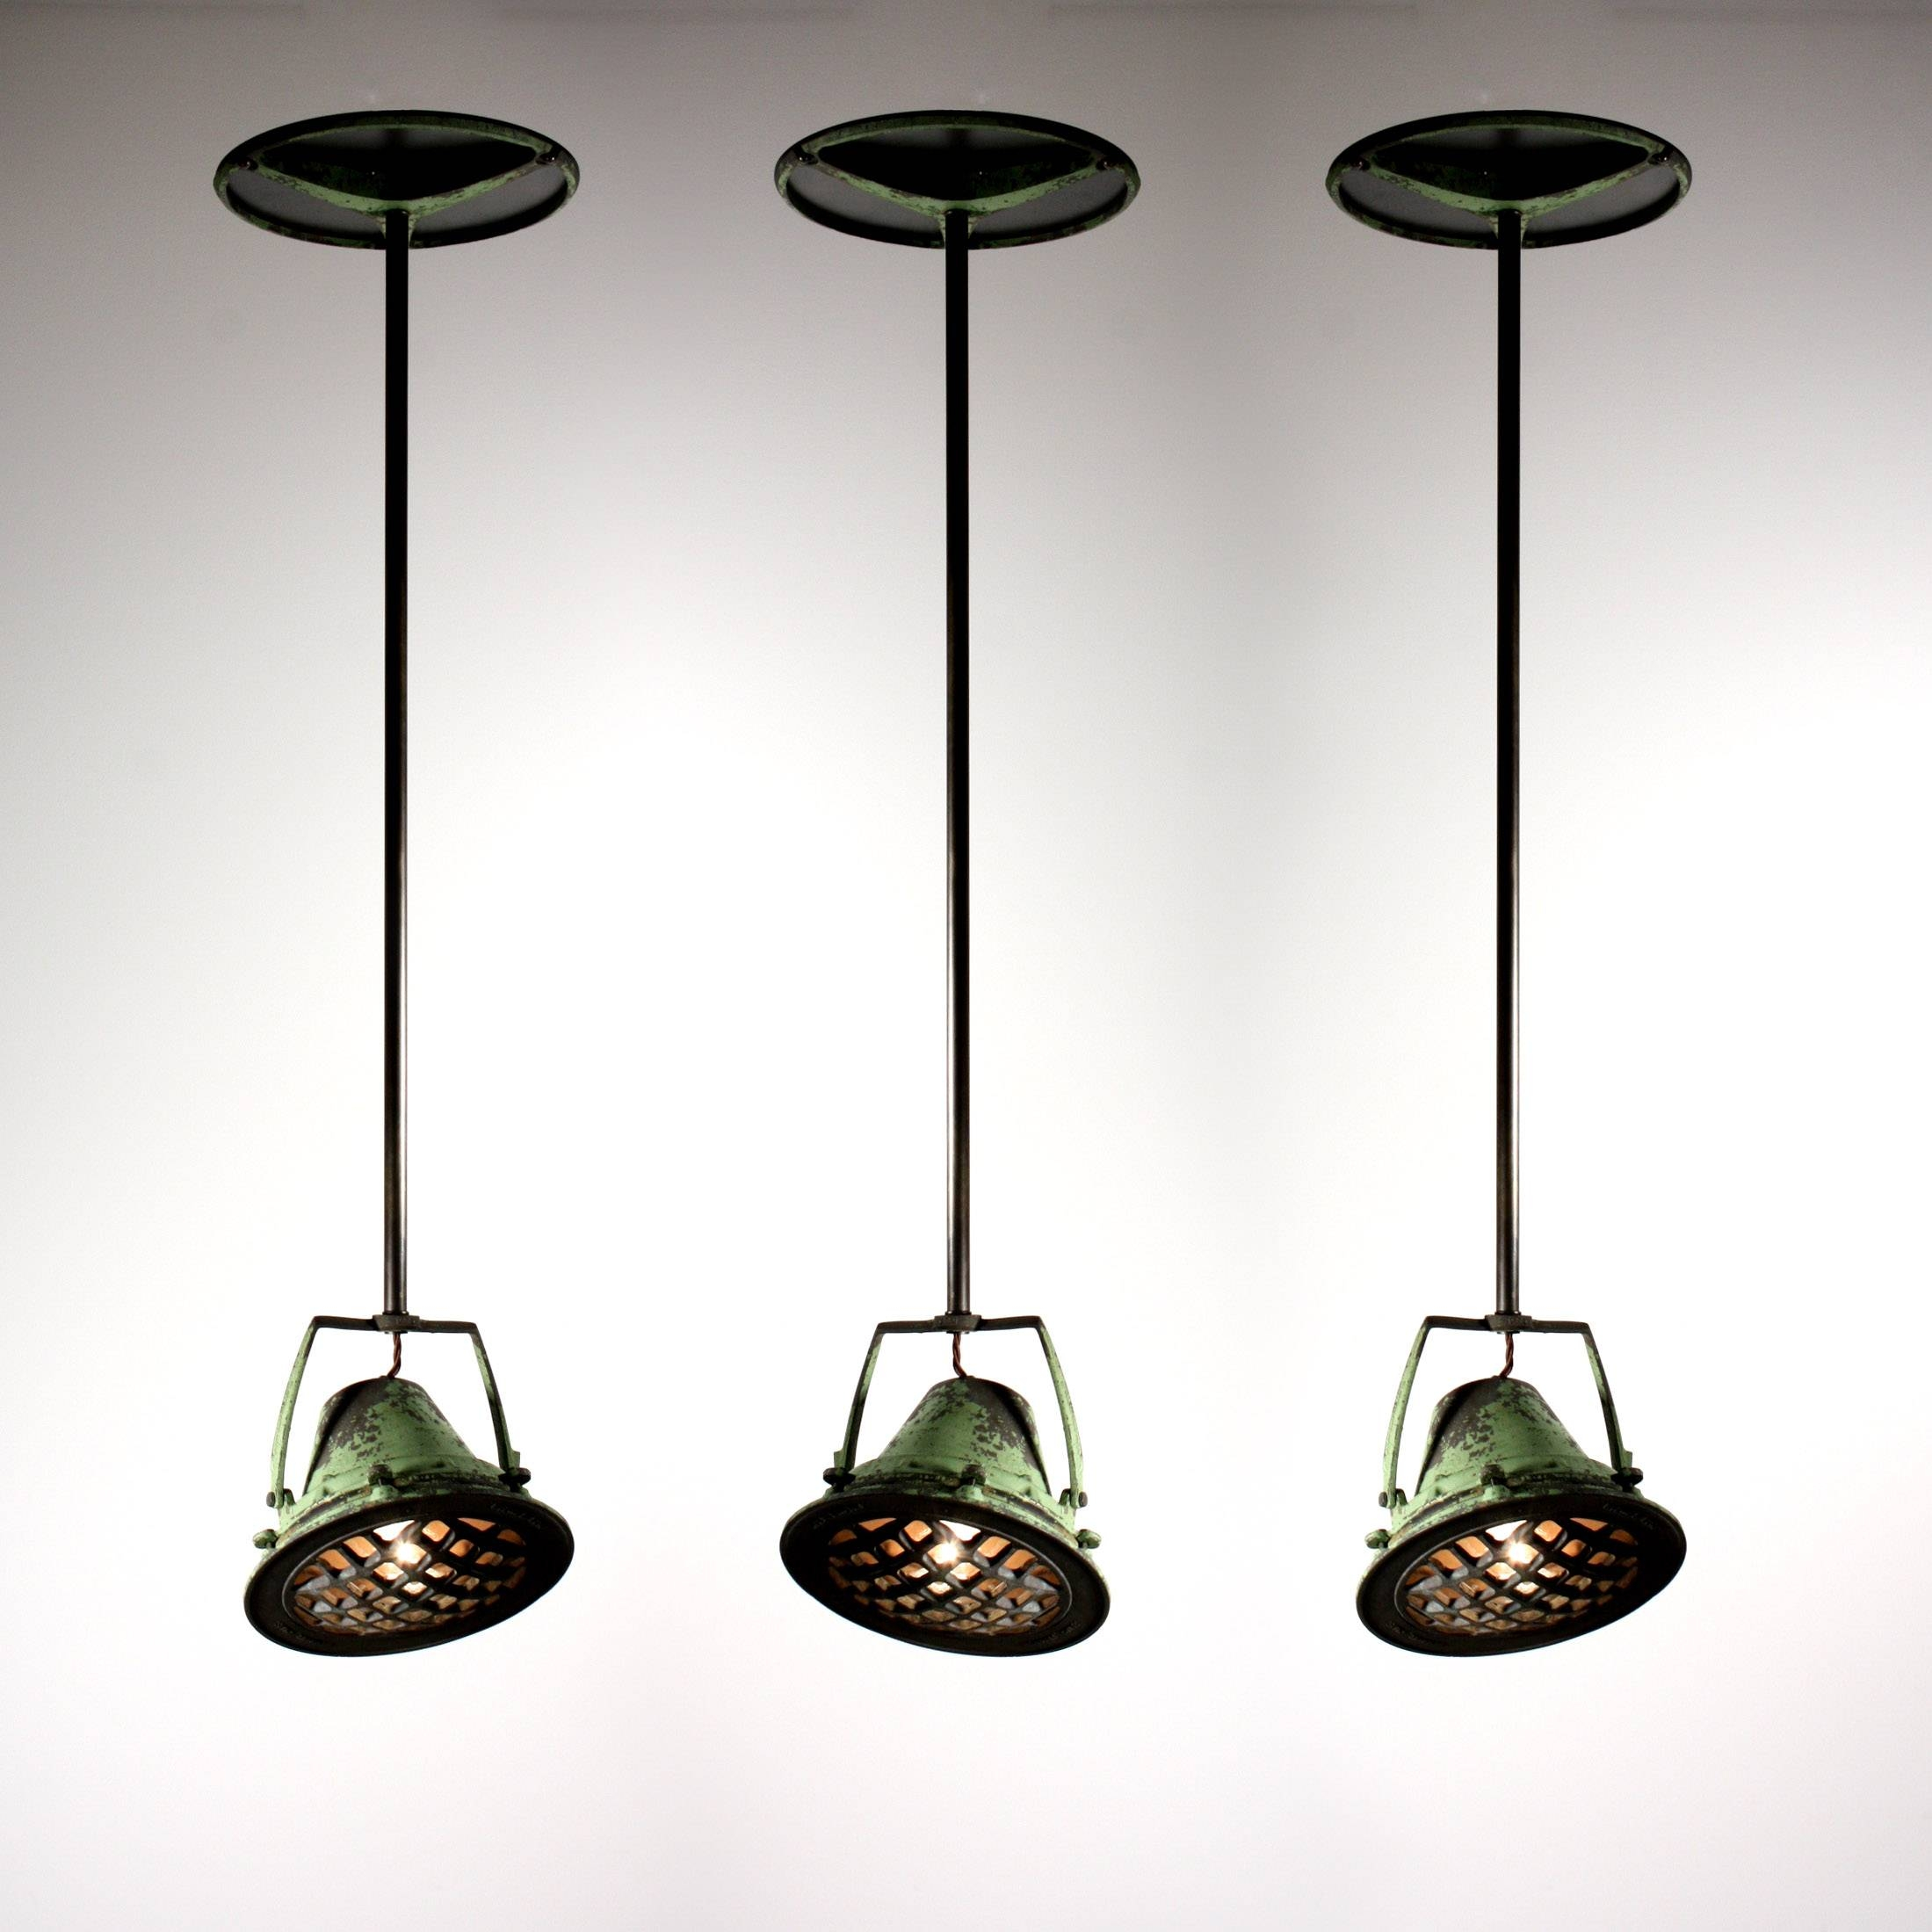 Three Matching Antique Industrial Pendant Lights From Union throughout Union Lighting Pendants (Image 13 of 15)